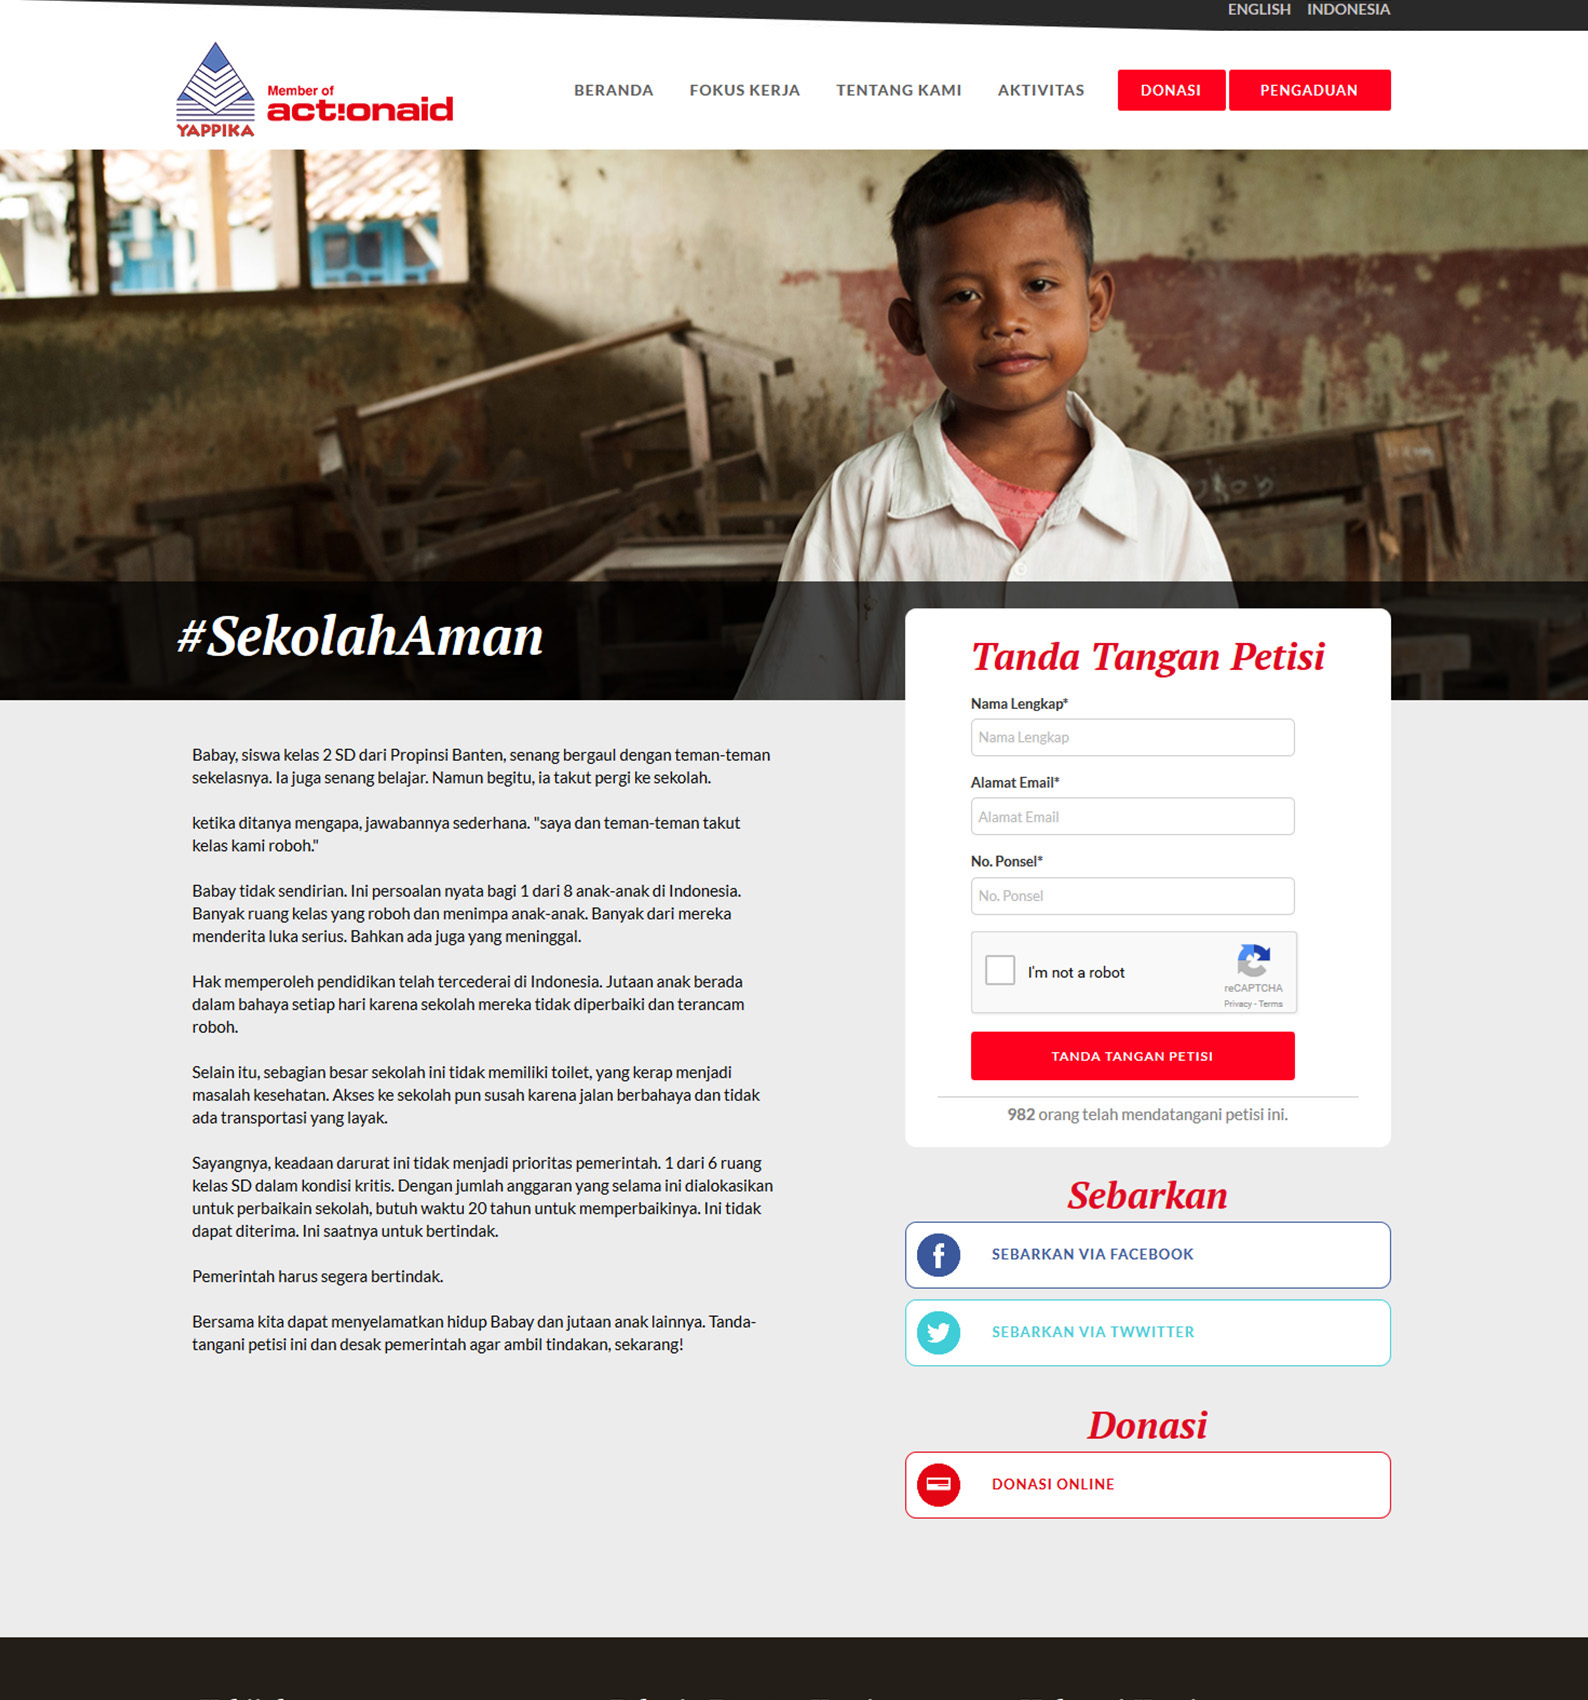 Komunigrafik project portfolio inspiration template web design and web developer, Yappika ActionAid Organization, web donation and campaign crowd funding, and charity, foundation, Jakarta Pusat, Indonesia